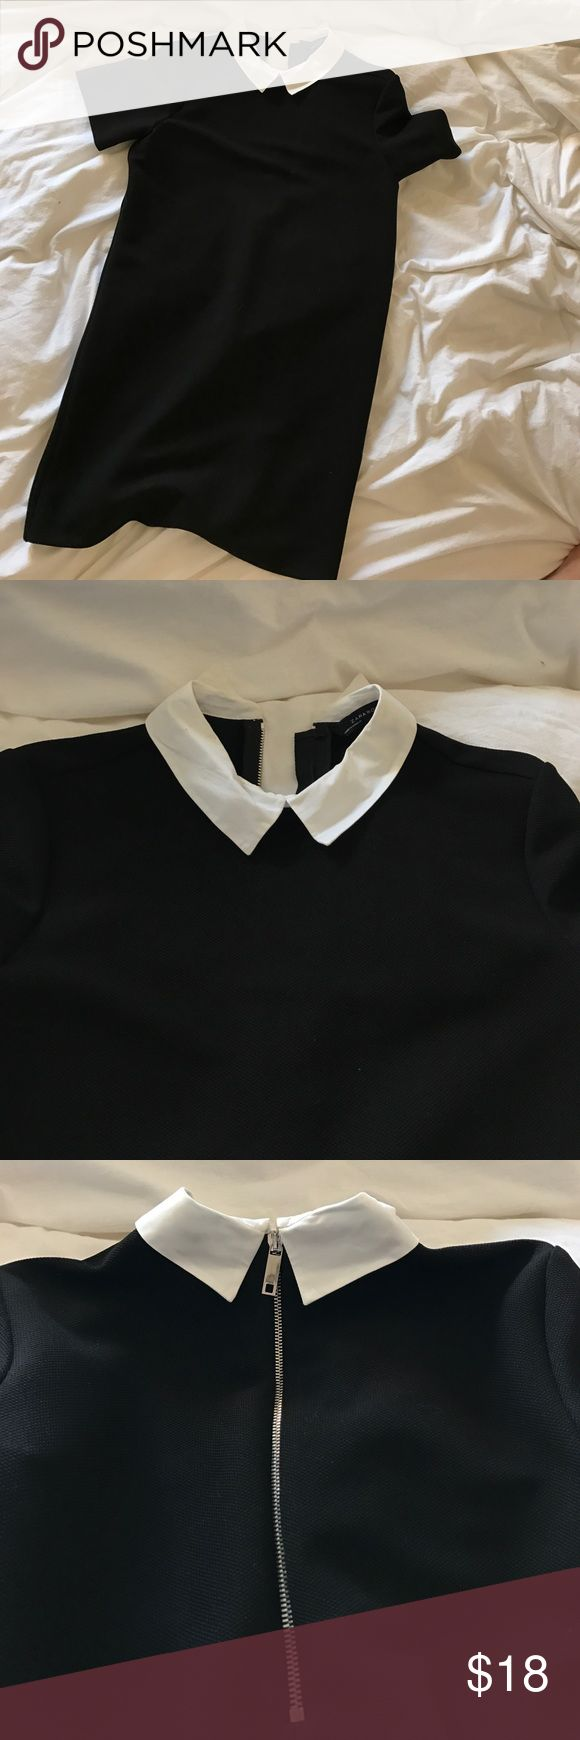 ZARA Wednesday Addams black and white collar dress Such a great dress - wear it all year and even Halloween! Lol. White poplin collar, black shirt dress, silver zip up back. In gr8 condition. Bundles and offers welcome Zara Dresses Mini